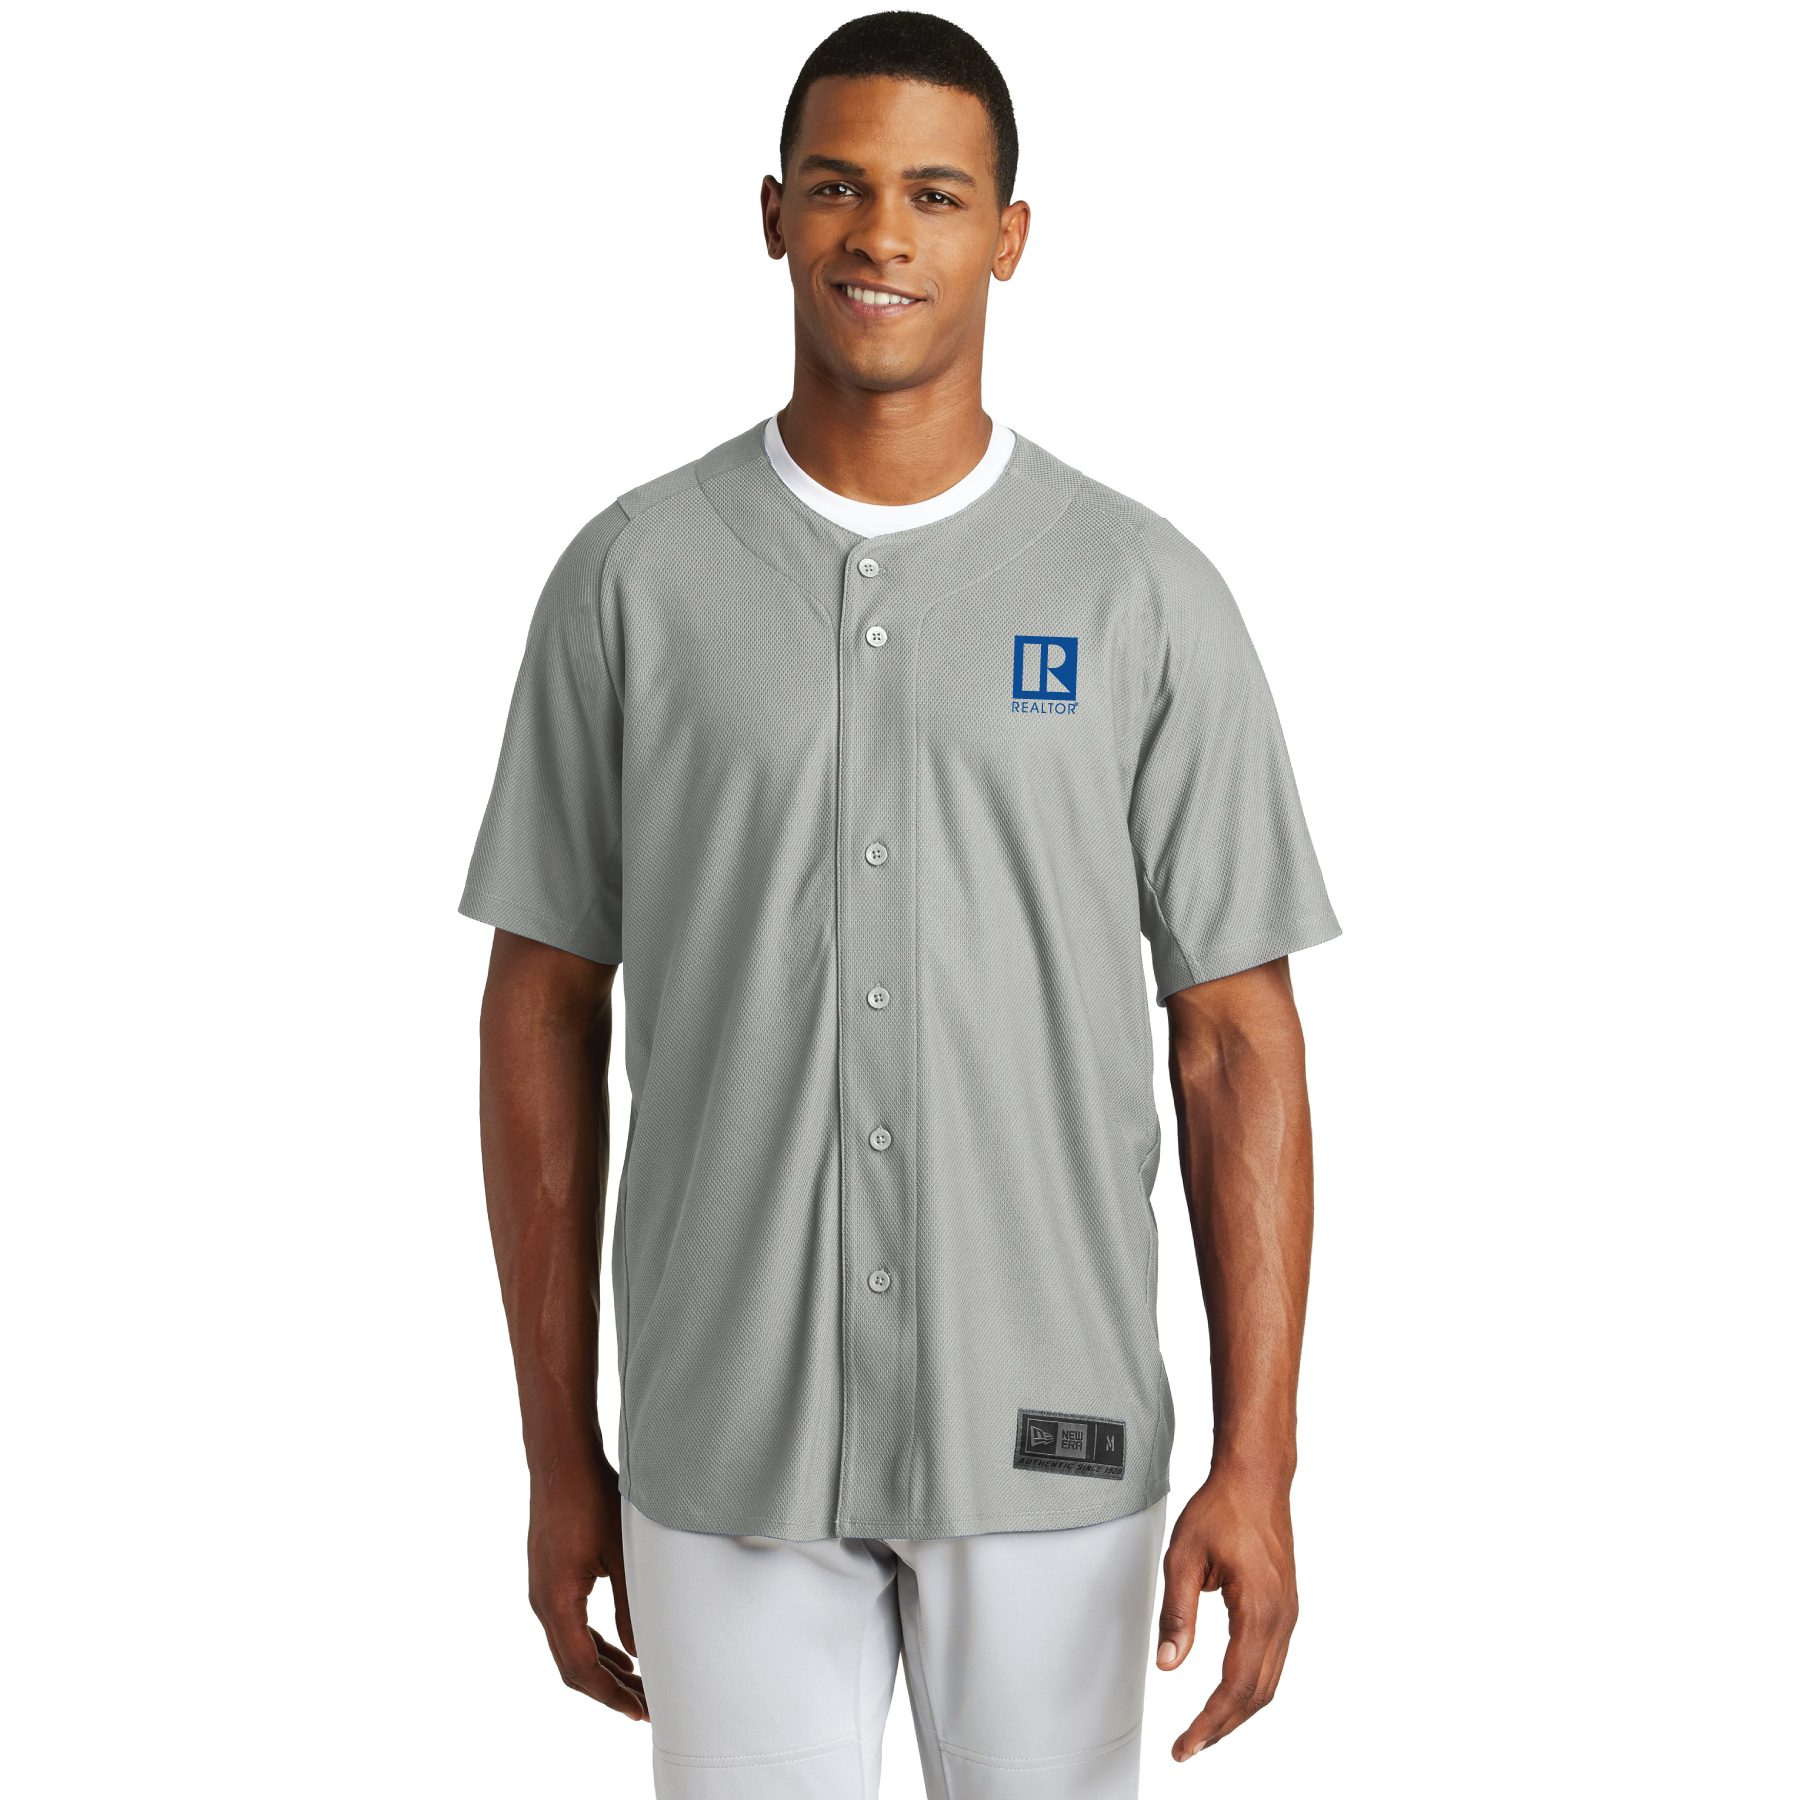 New Era Diamond Era Full-Button Jersey Button Downs,Dress,Shirts,Collars, buttons, jerseys,baseballs,button ups